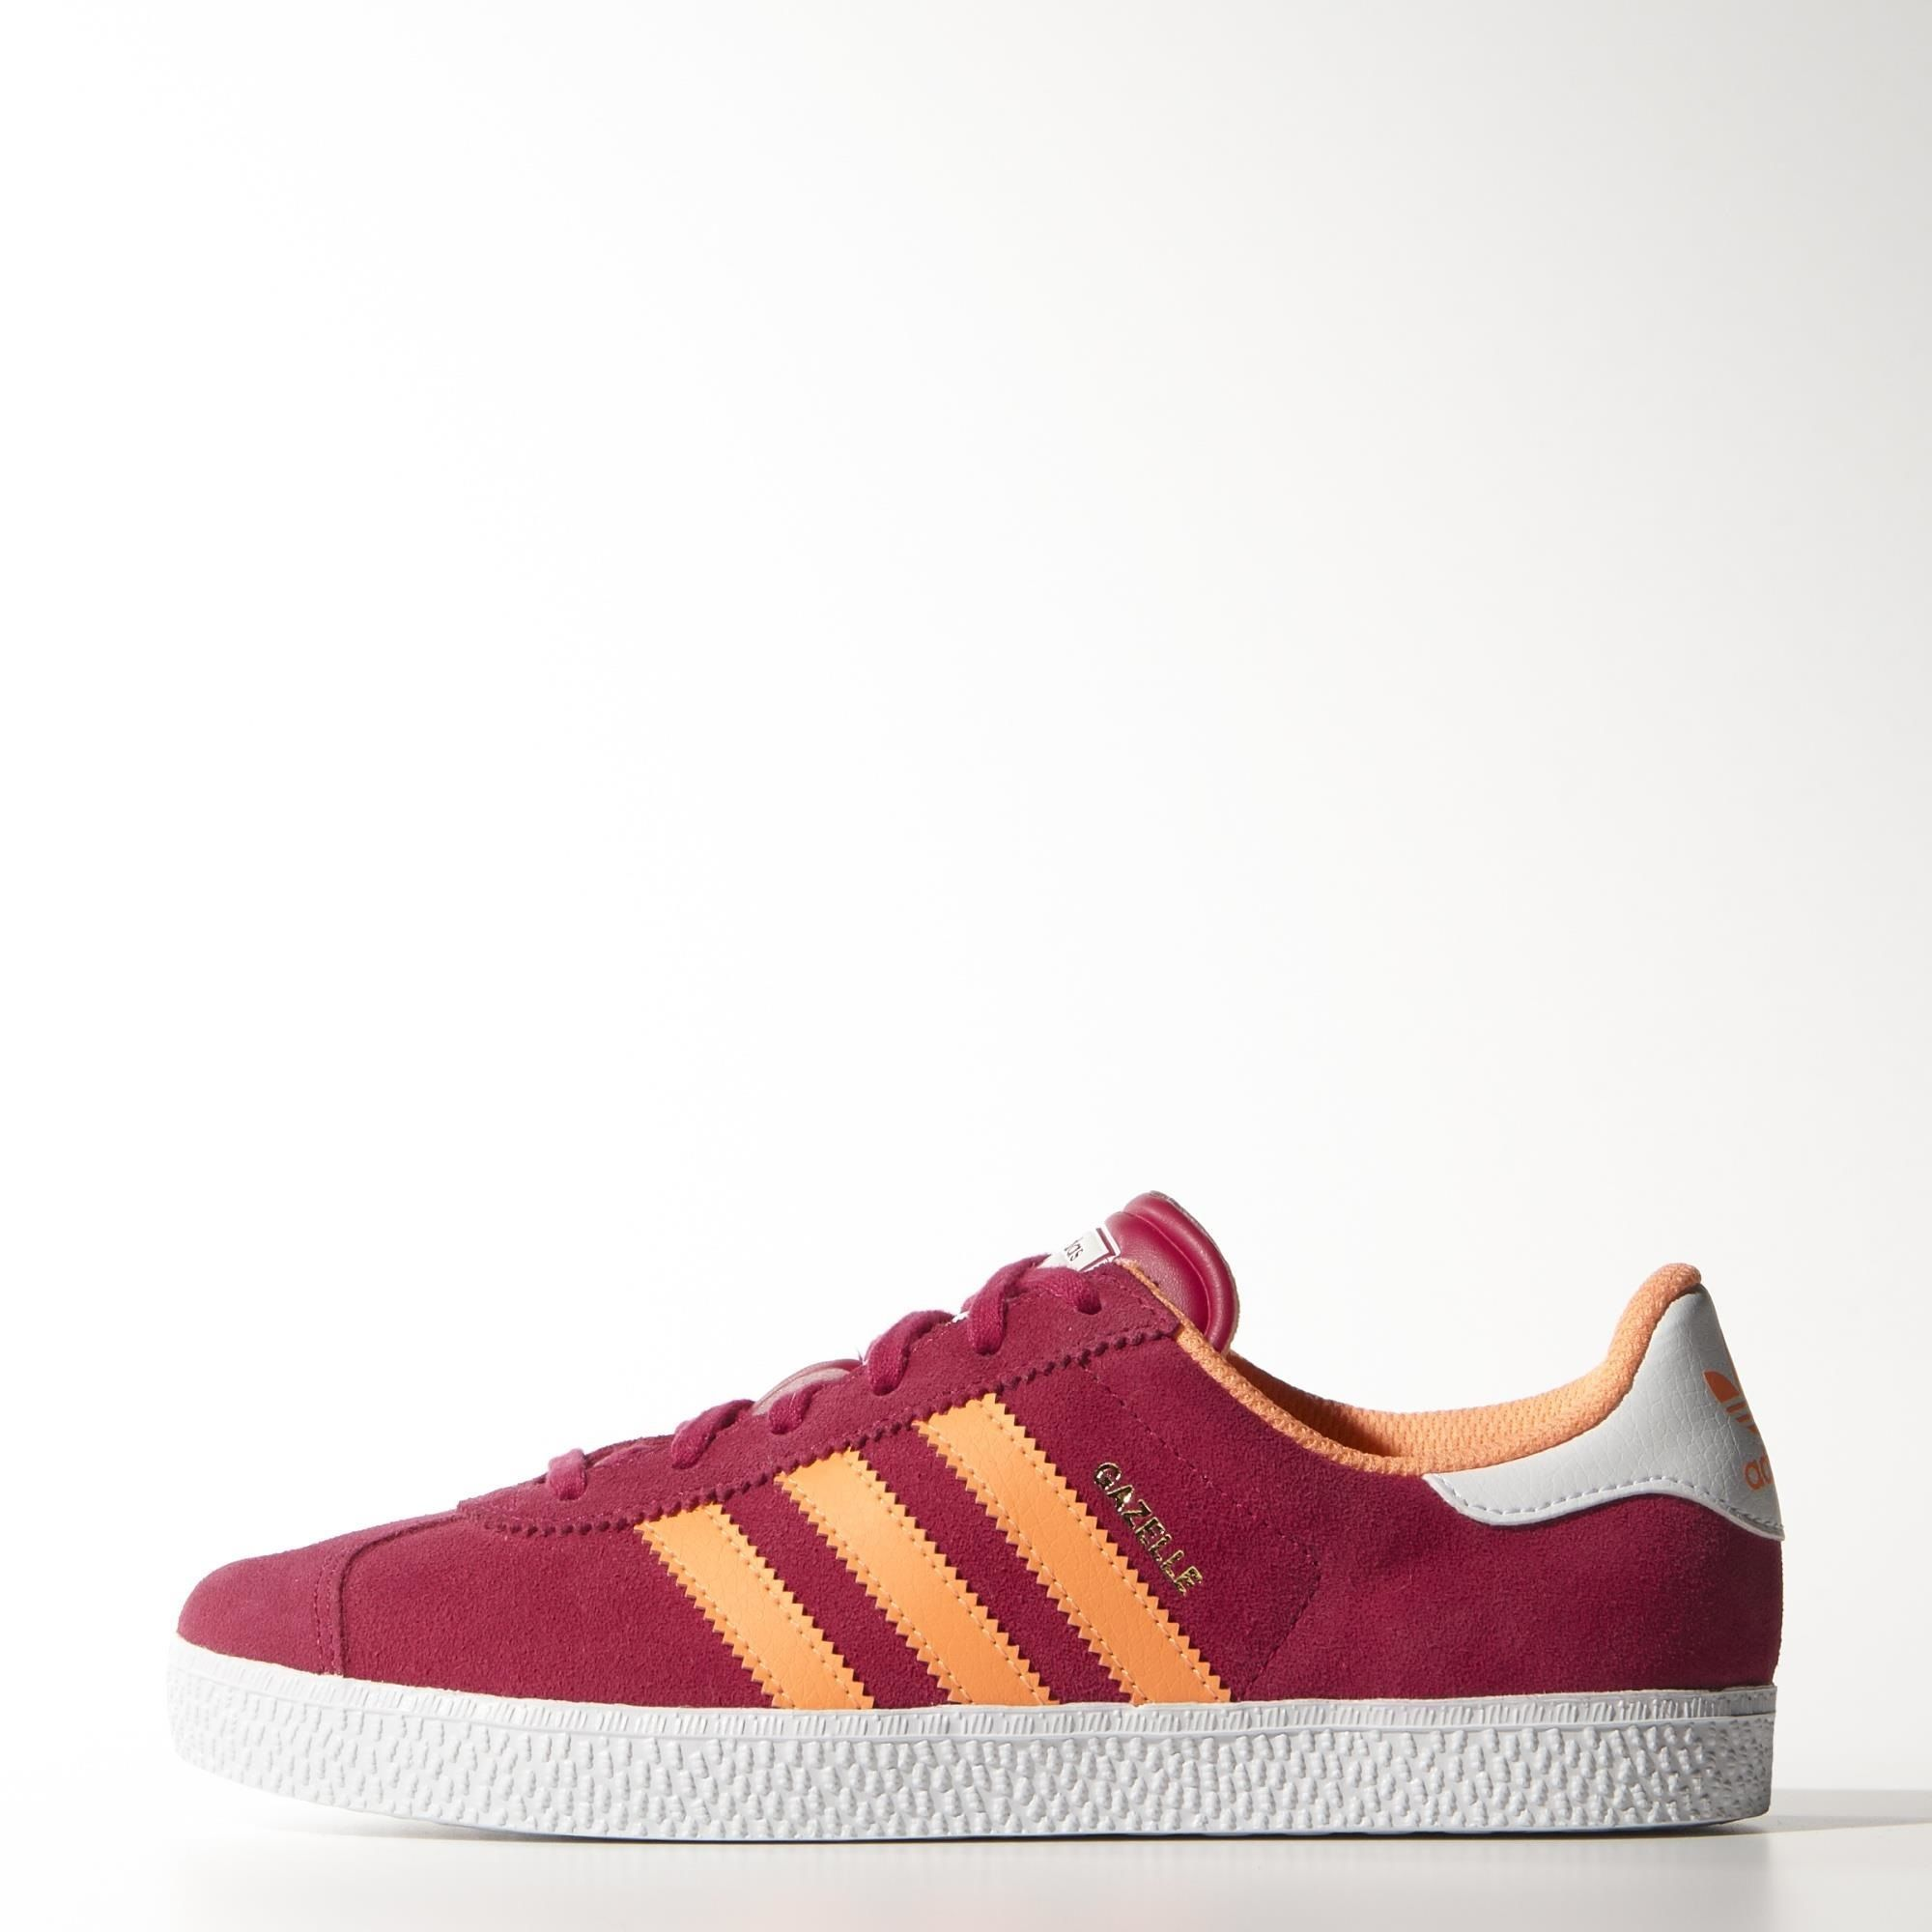 adidas - Gazelle 2.0 Shoes